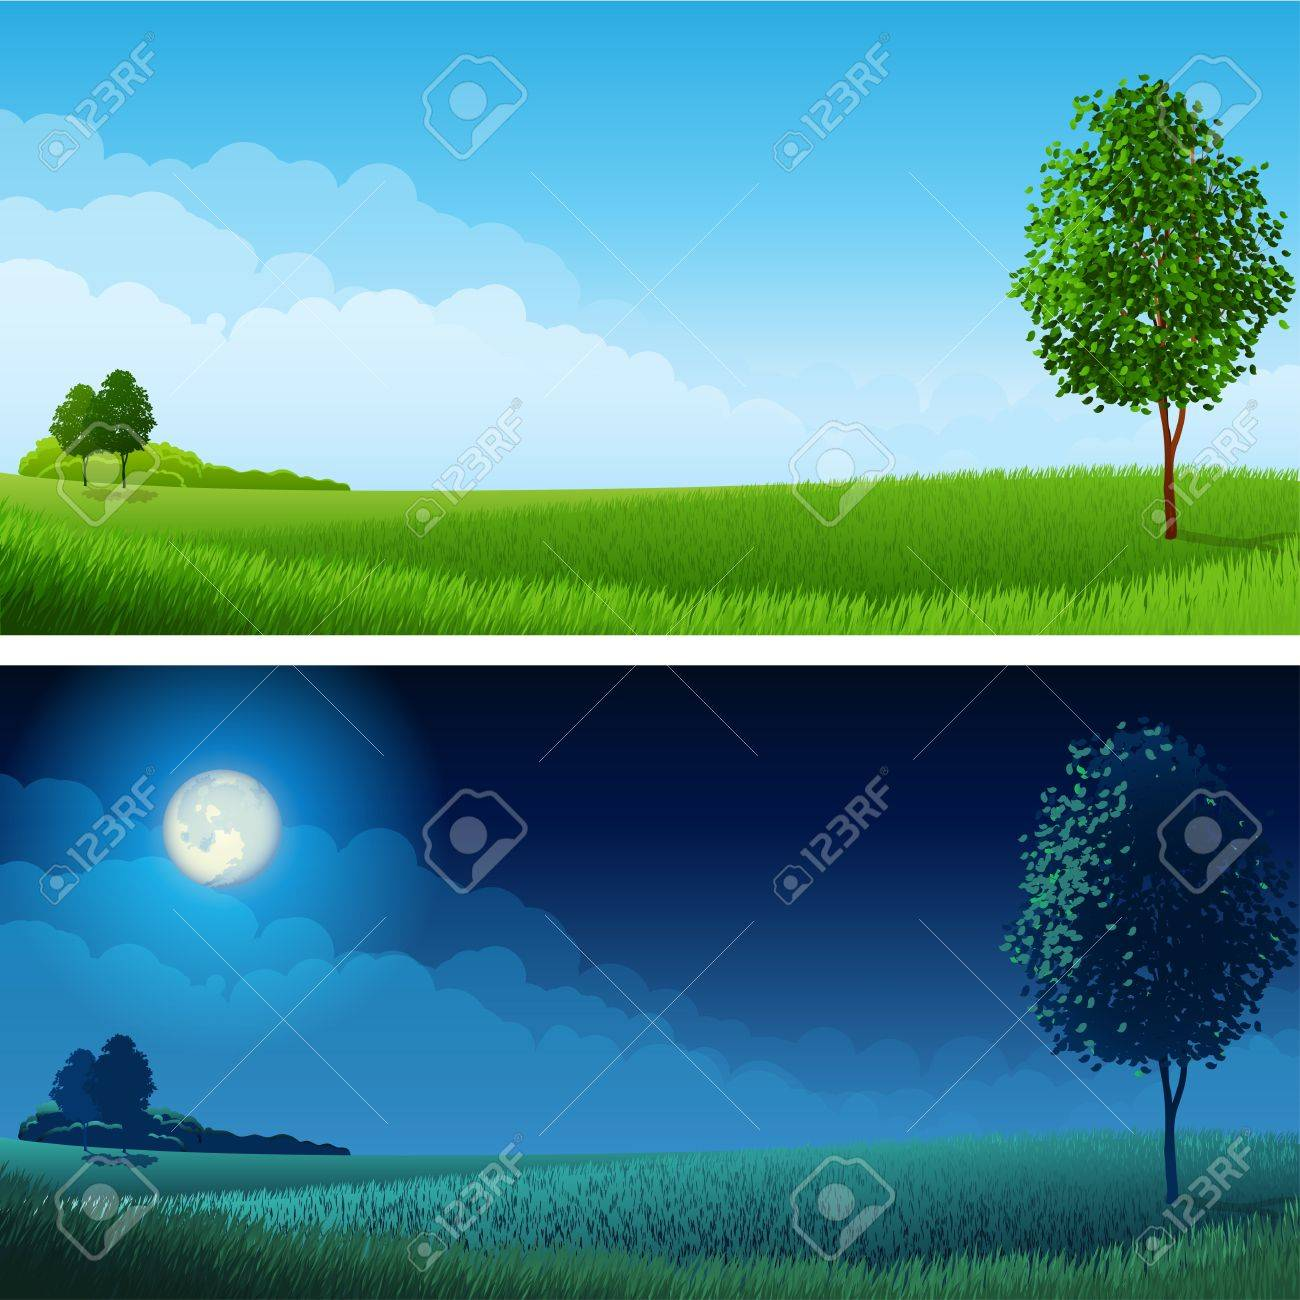 illustration - Summer landscape (day and night), RGB.Use transparency and blend modes - 14600173